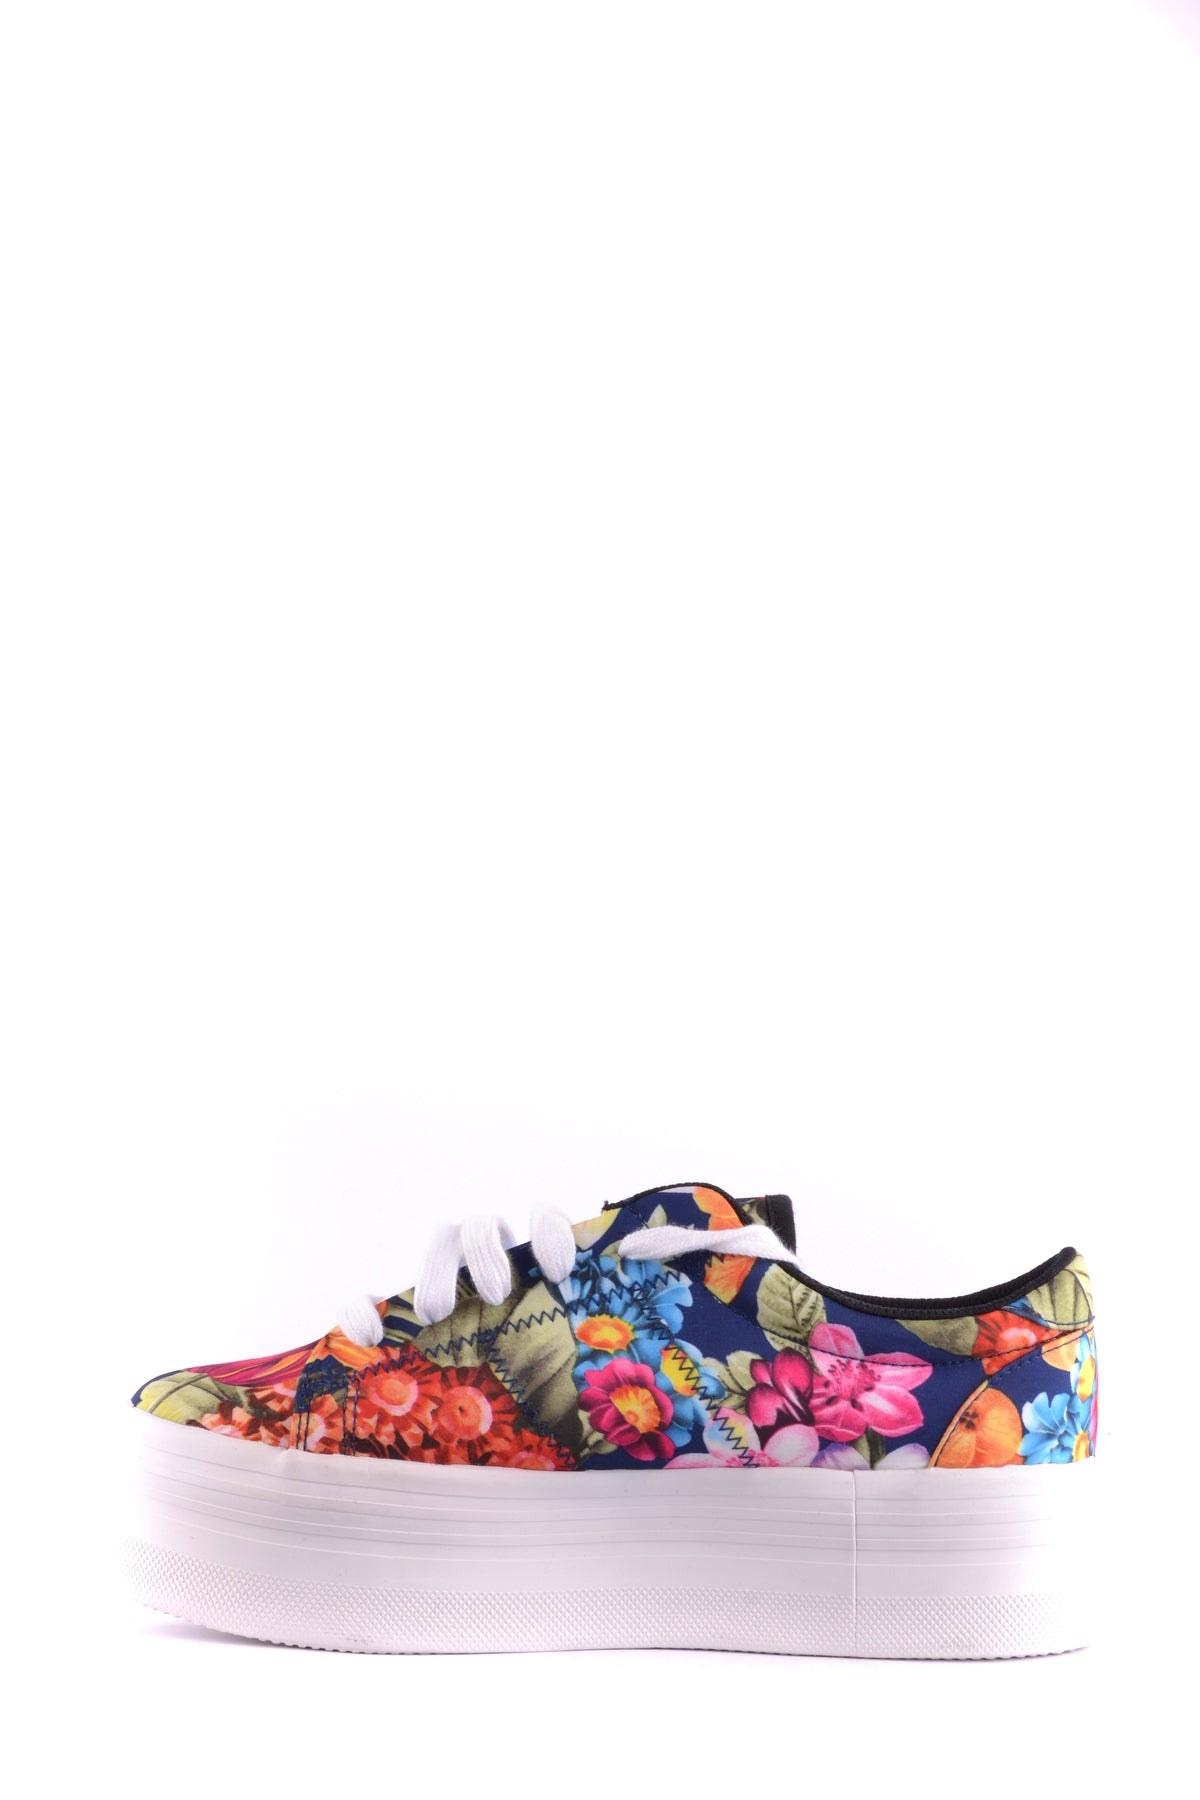 Shoes Jc Play By Jeffrey Campbell-Shoes - WOMAN-Product Details Type Of Accessory: ShoesTerms: New With LabelYear: 2017Main Color: MulticolorSeason: Spring / SummerMade In: VietnamSize: EuGender: WomanComposition: Tissue 100%-Keyomi-Sook